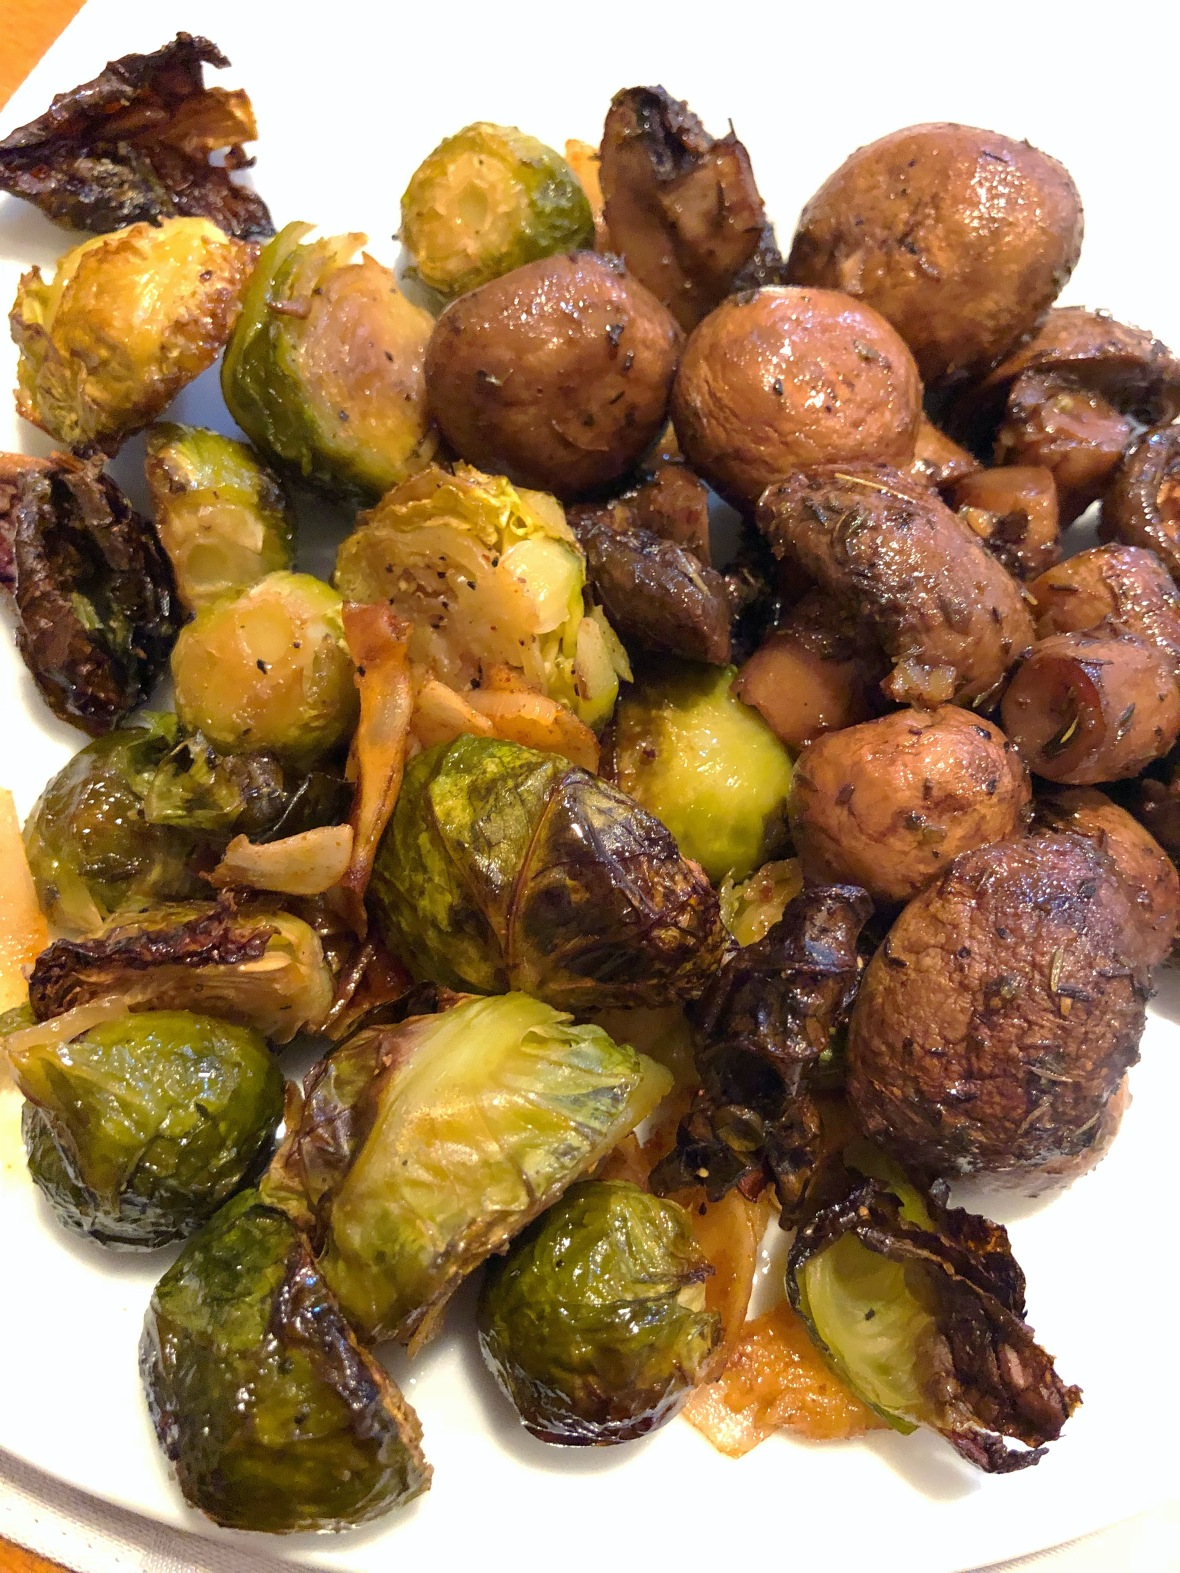 Stuffed Mushrooms & Roasted Brussel Sprouts NYE